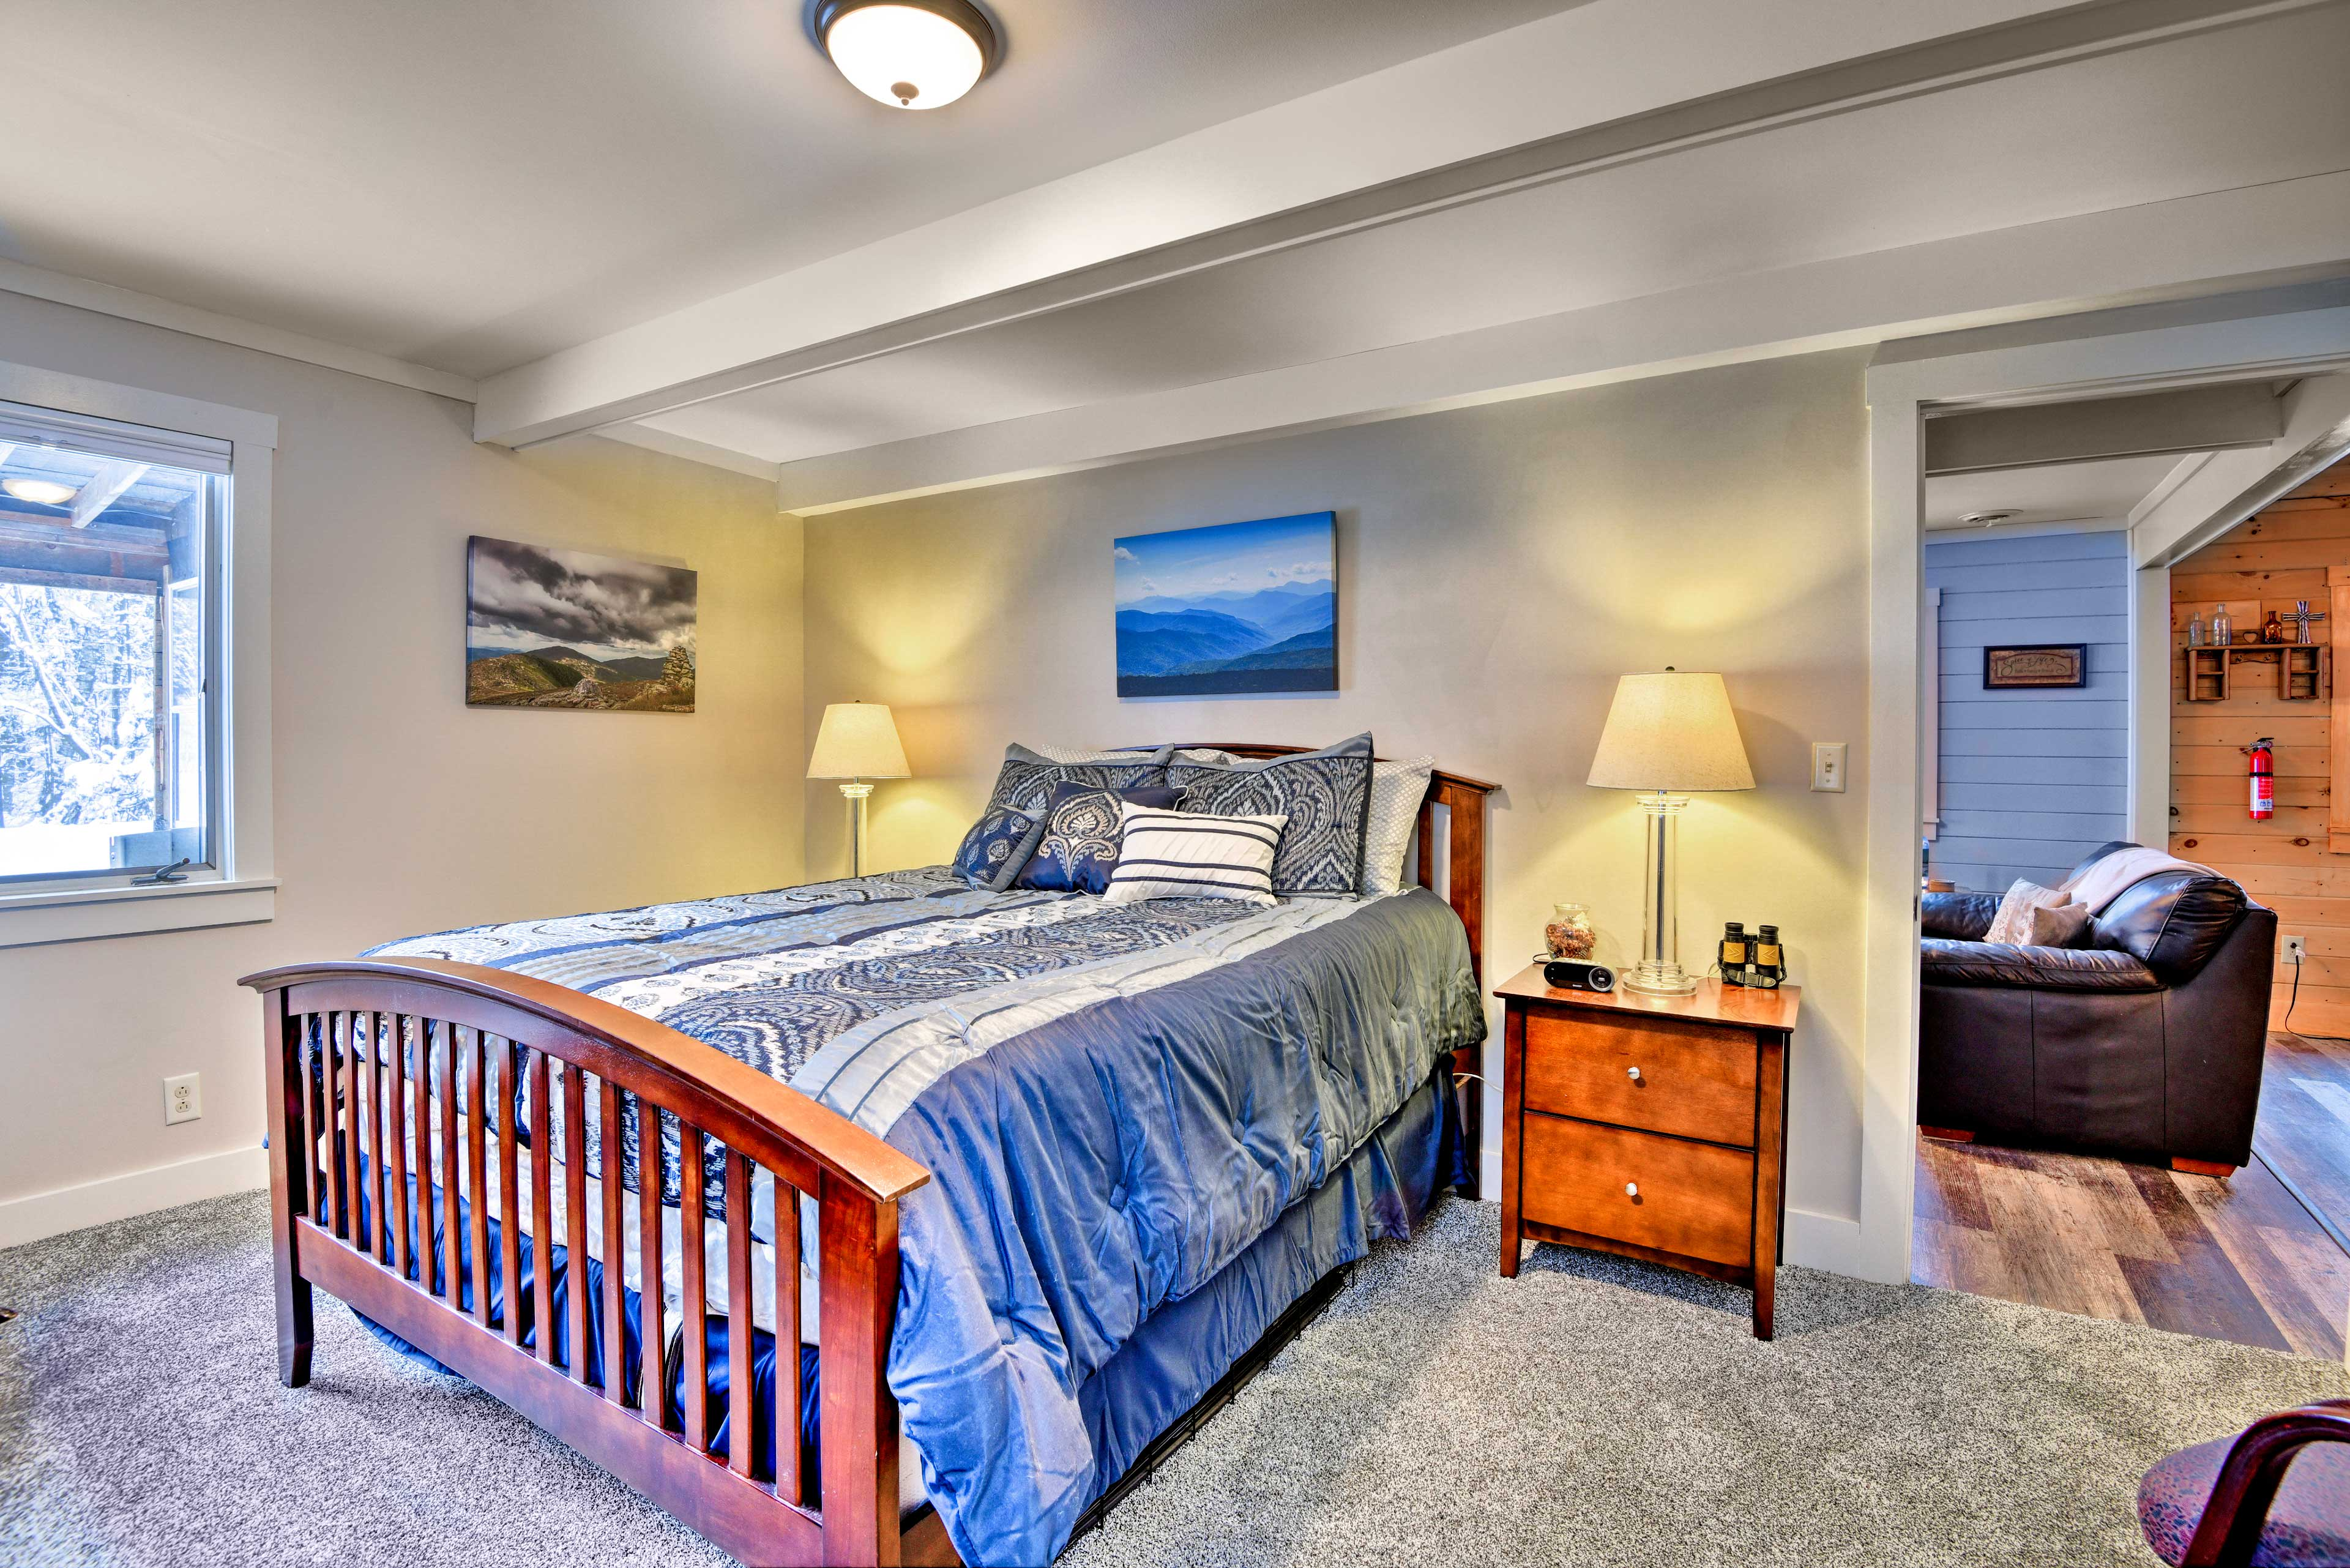 The first bedroom has a queen bed and is located on the first floor.